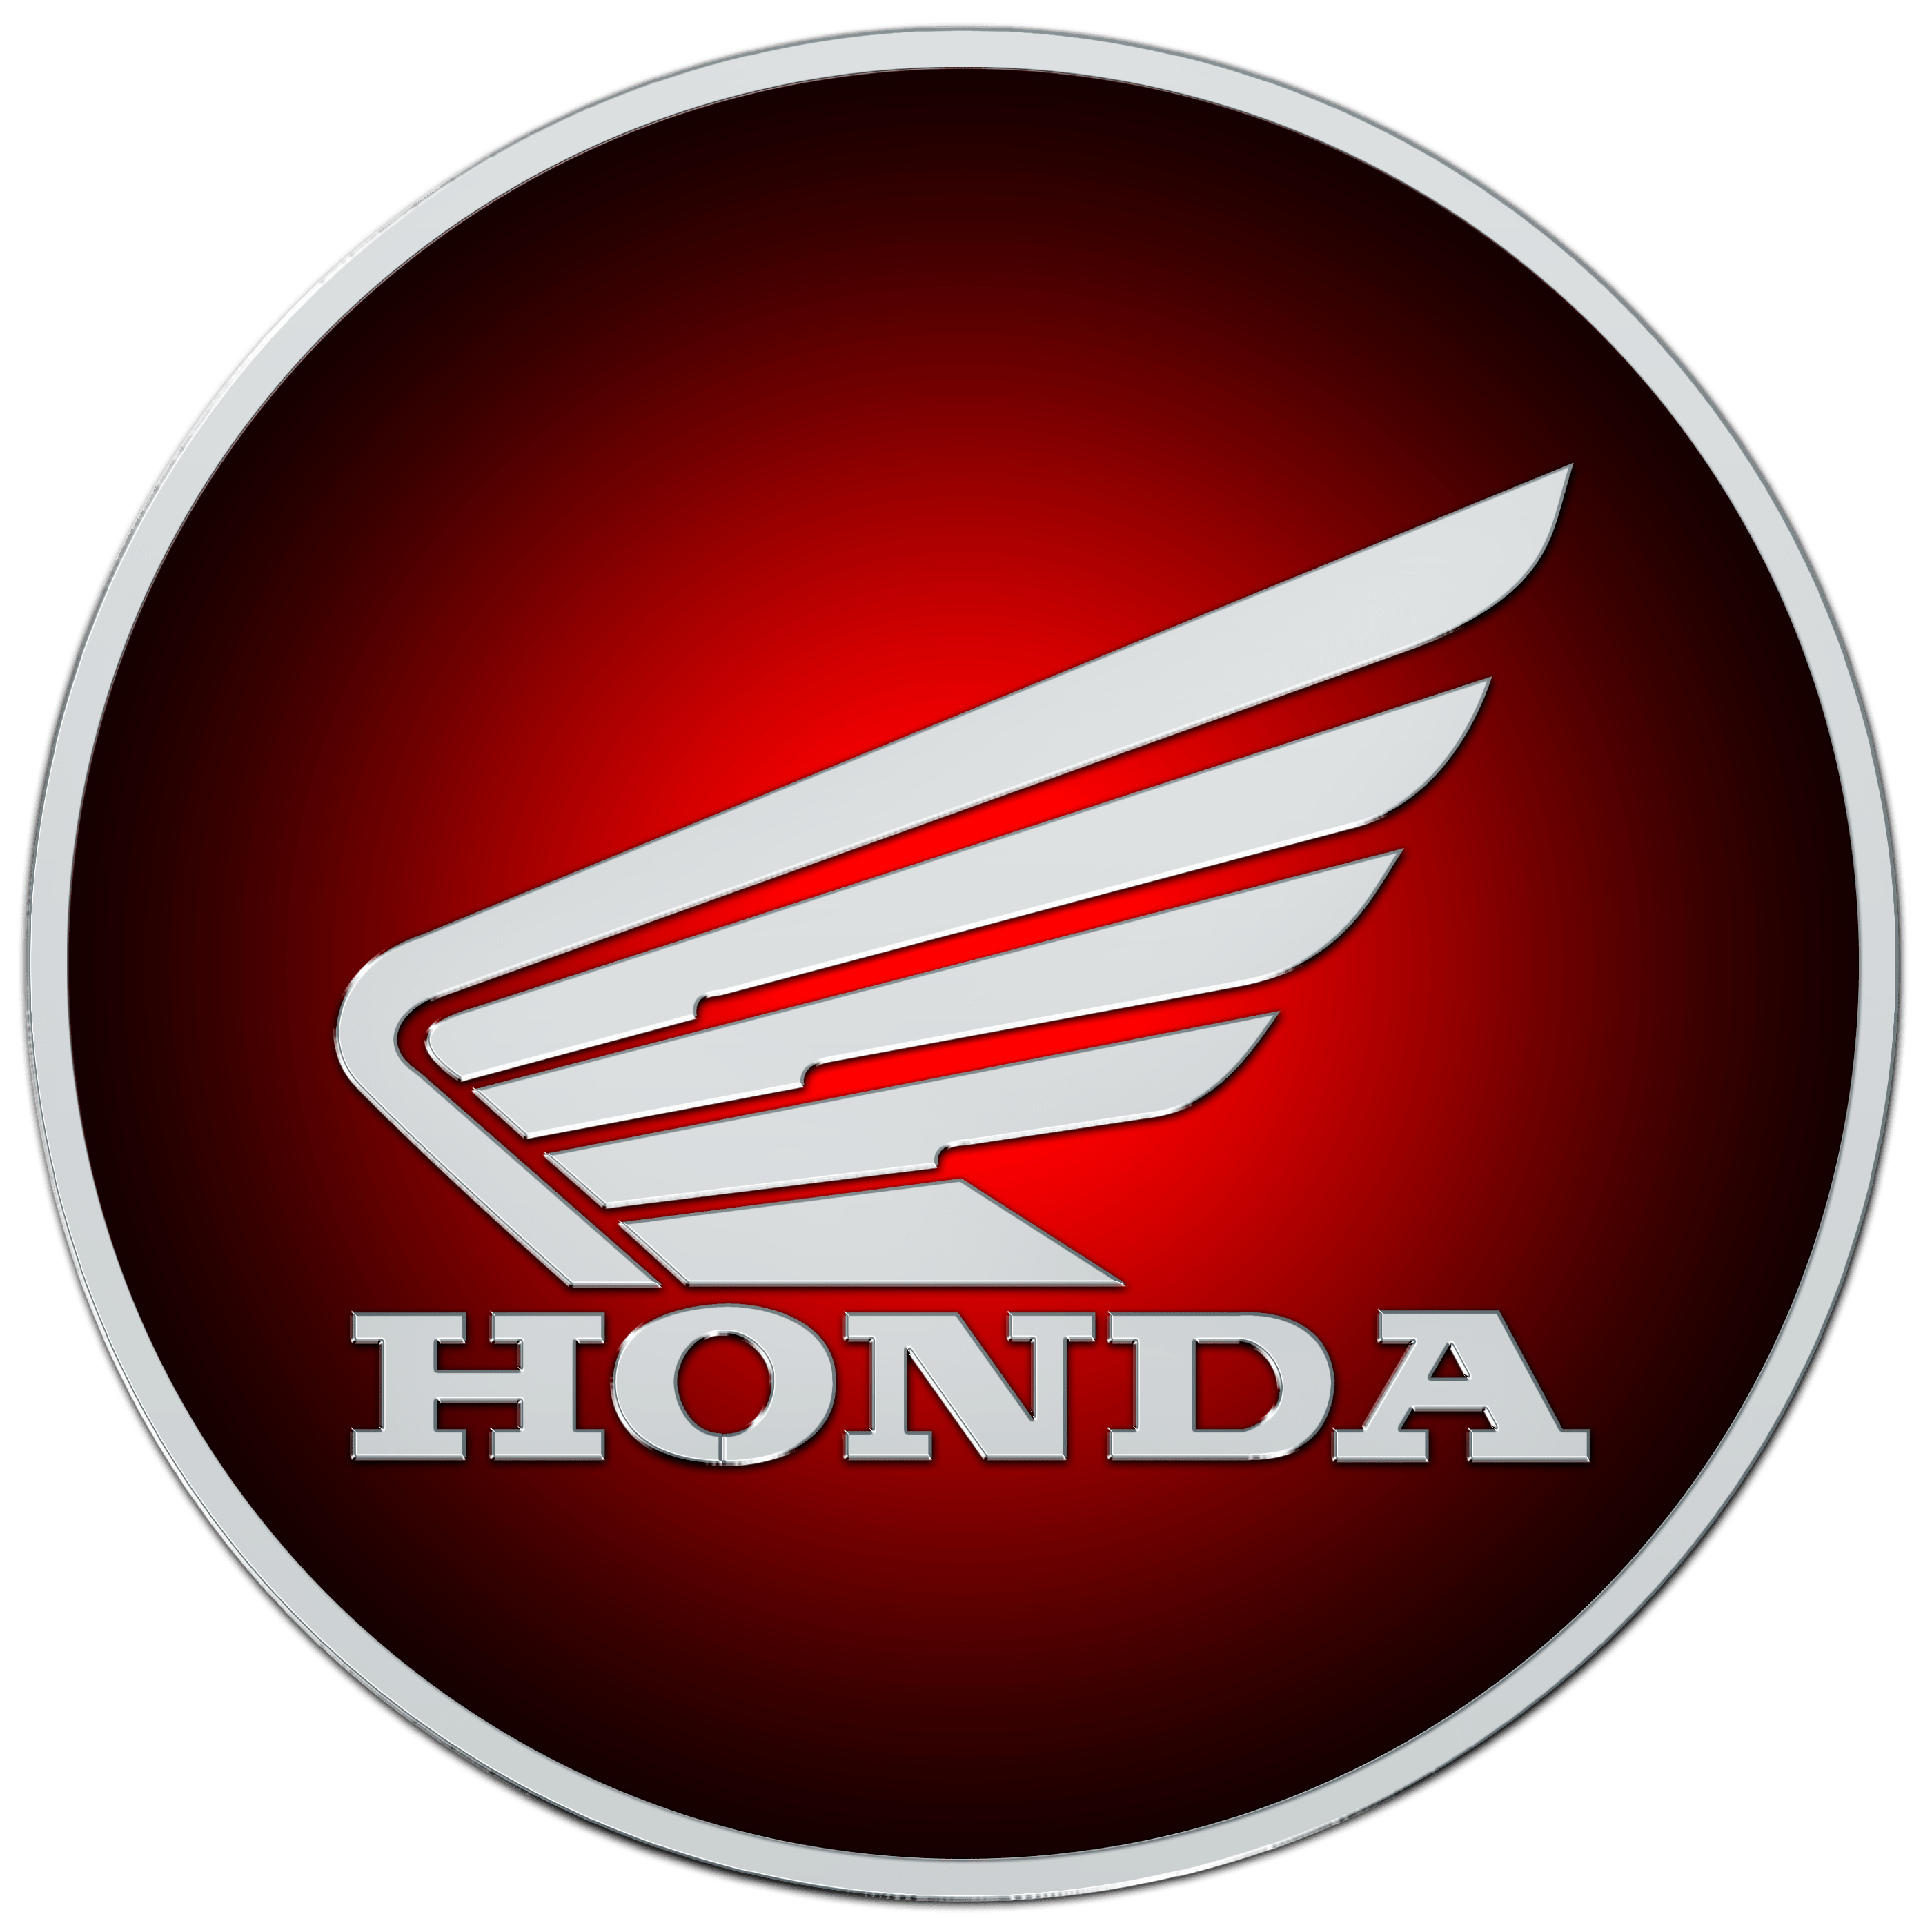 Information About The Company Honda Founded October 1946 Incorporated 24 September 1948 Founder Soichiro